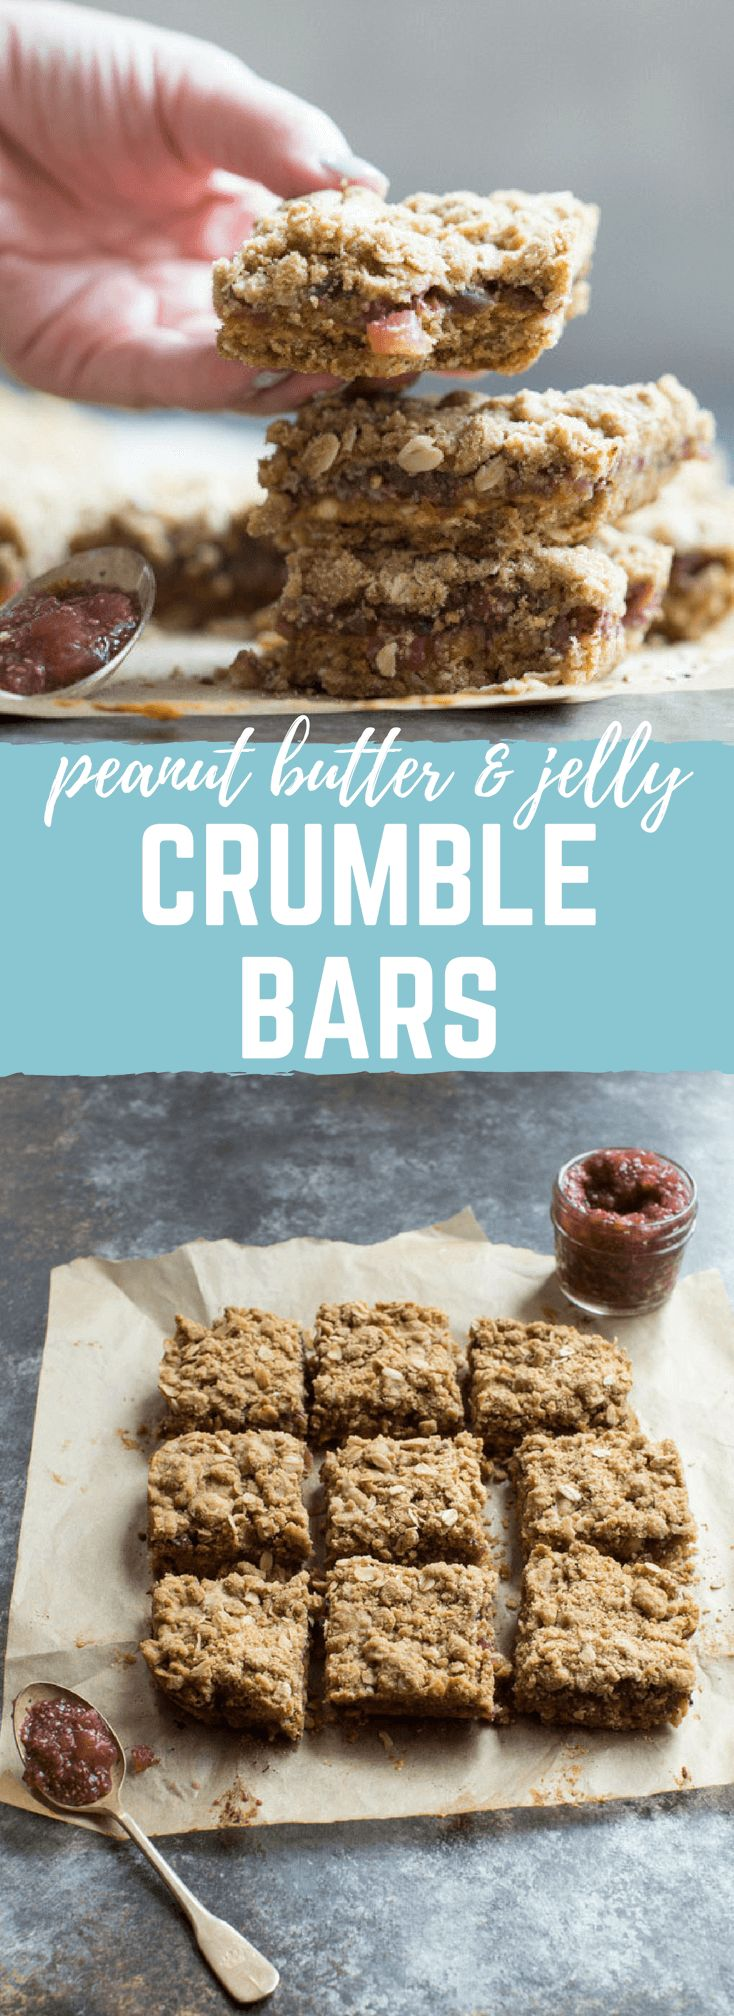 PBJ Crumble Bars made more wholesome with homemade watermelon chia jam, peanut butter, and whole grain oats for a yummy after school treat or dessert for your next party! #AD @WatermelonBoard